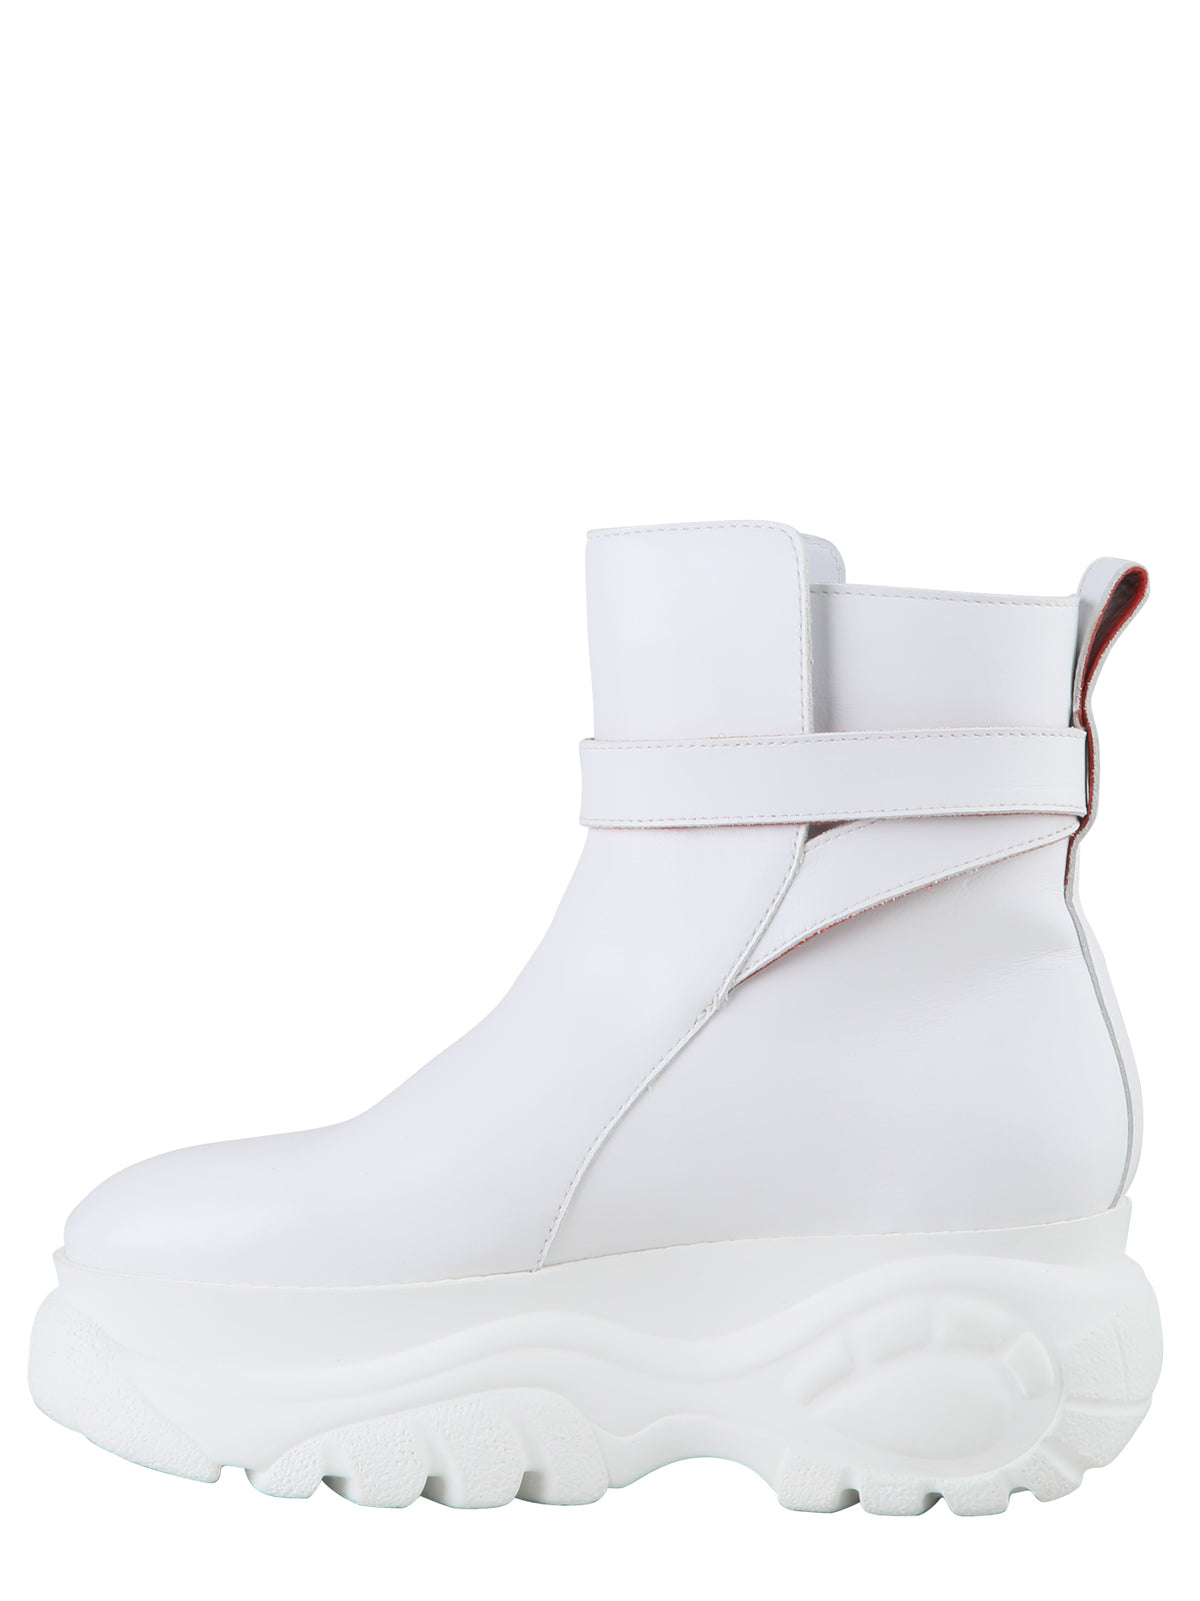 Buffalo by 032c Jodhpur Ankle Boot White - 032c